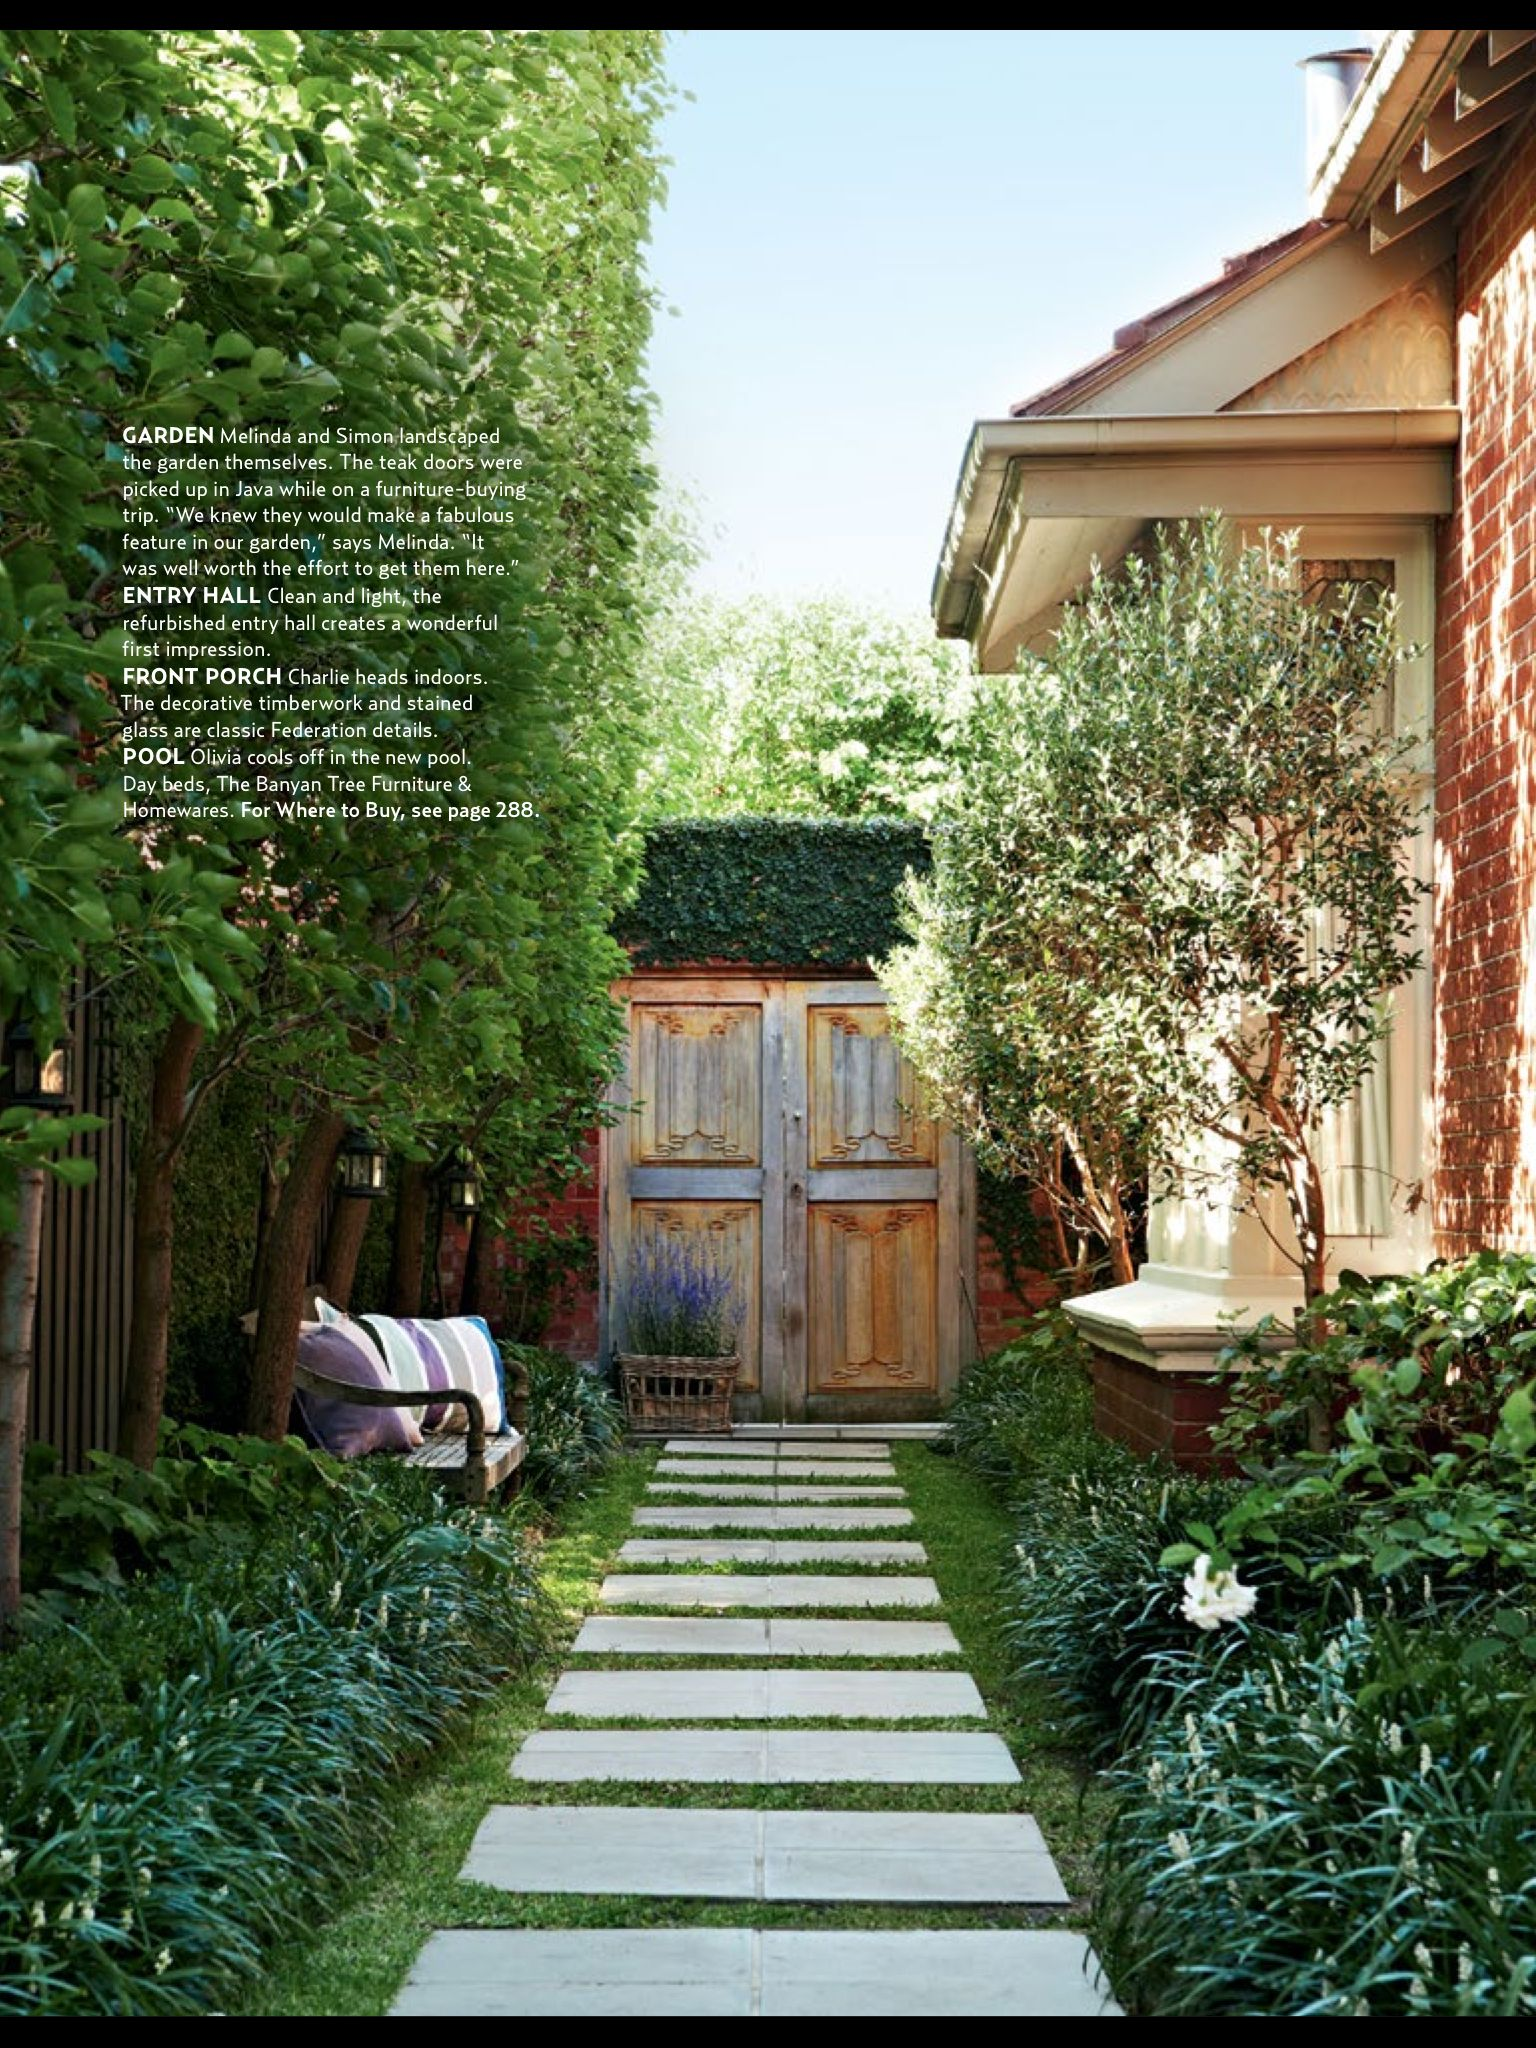 Balance between elegant and family friendly garden oasis